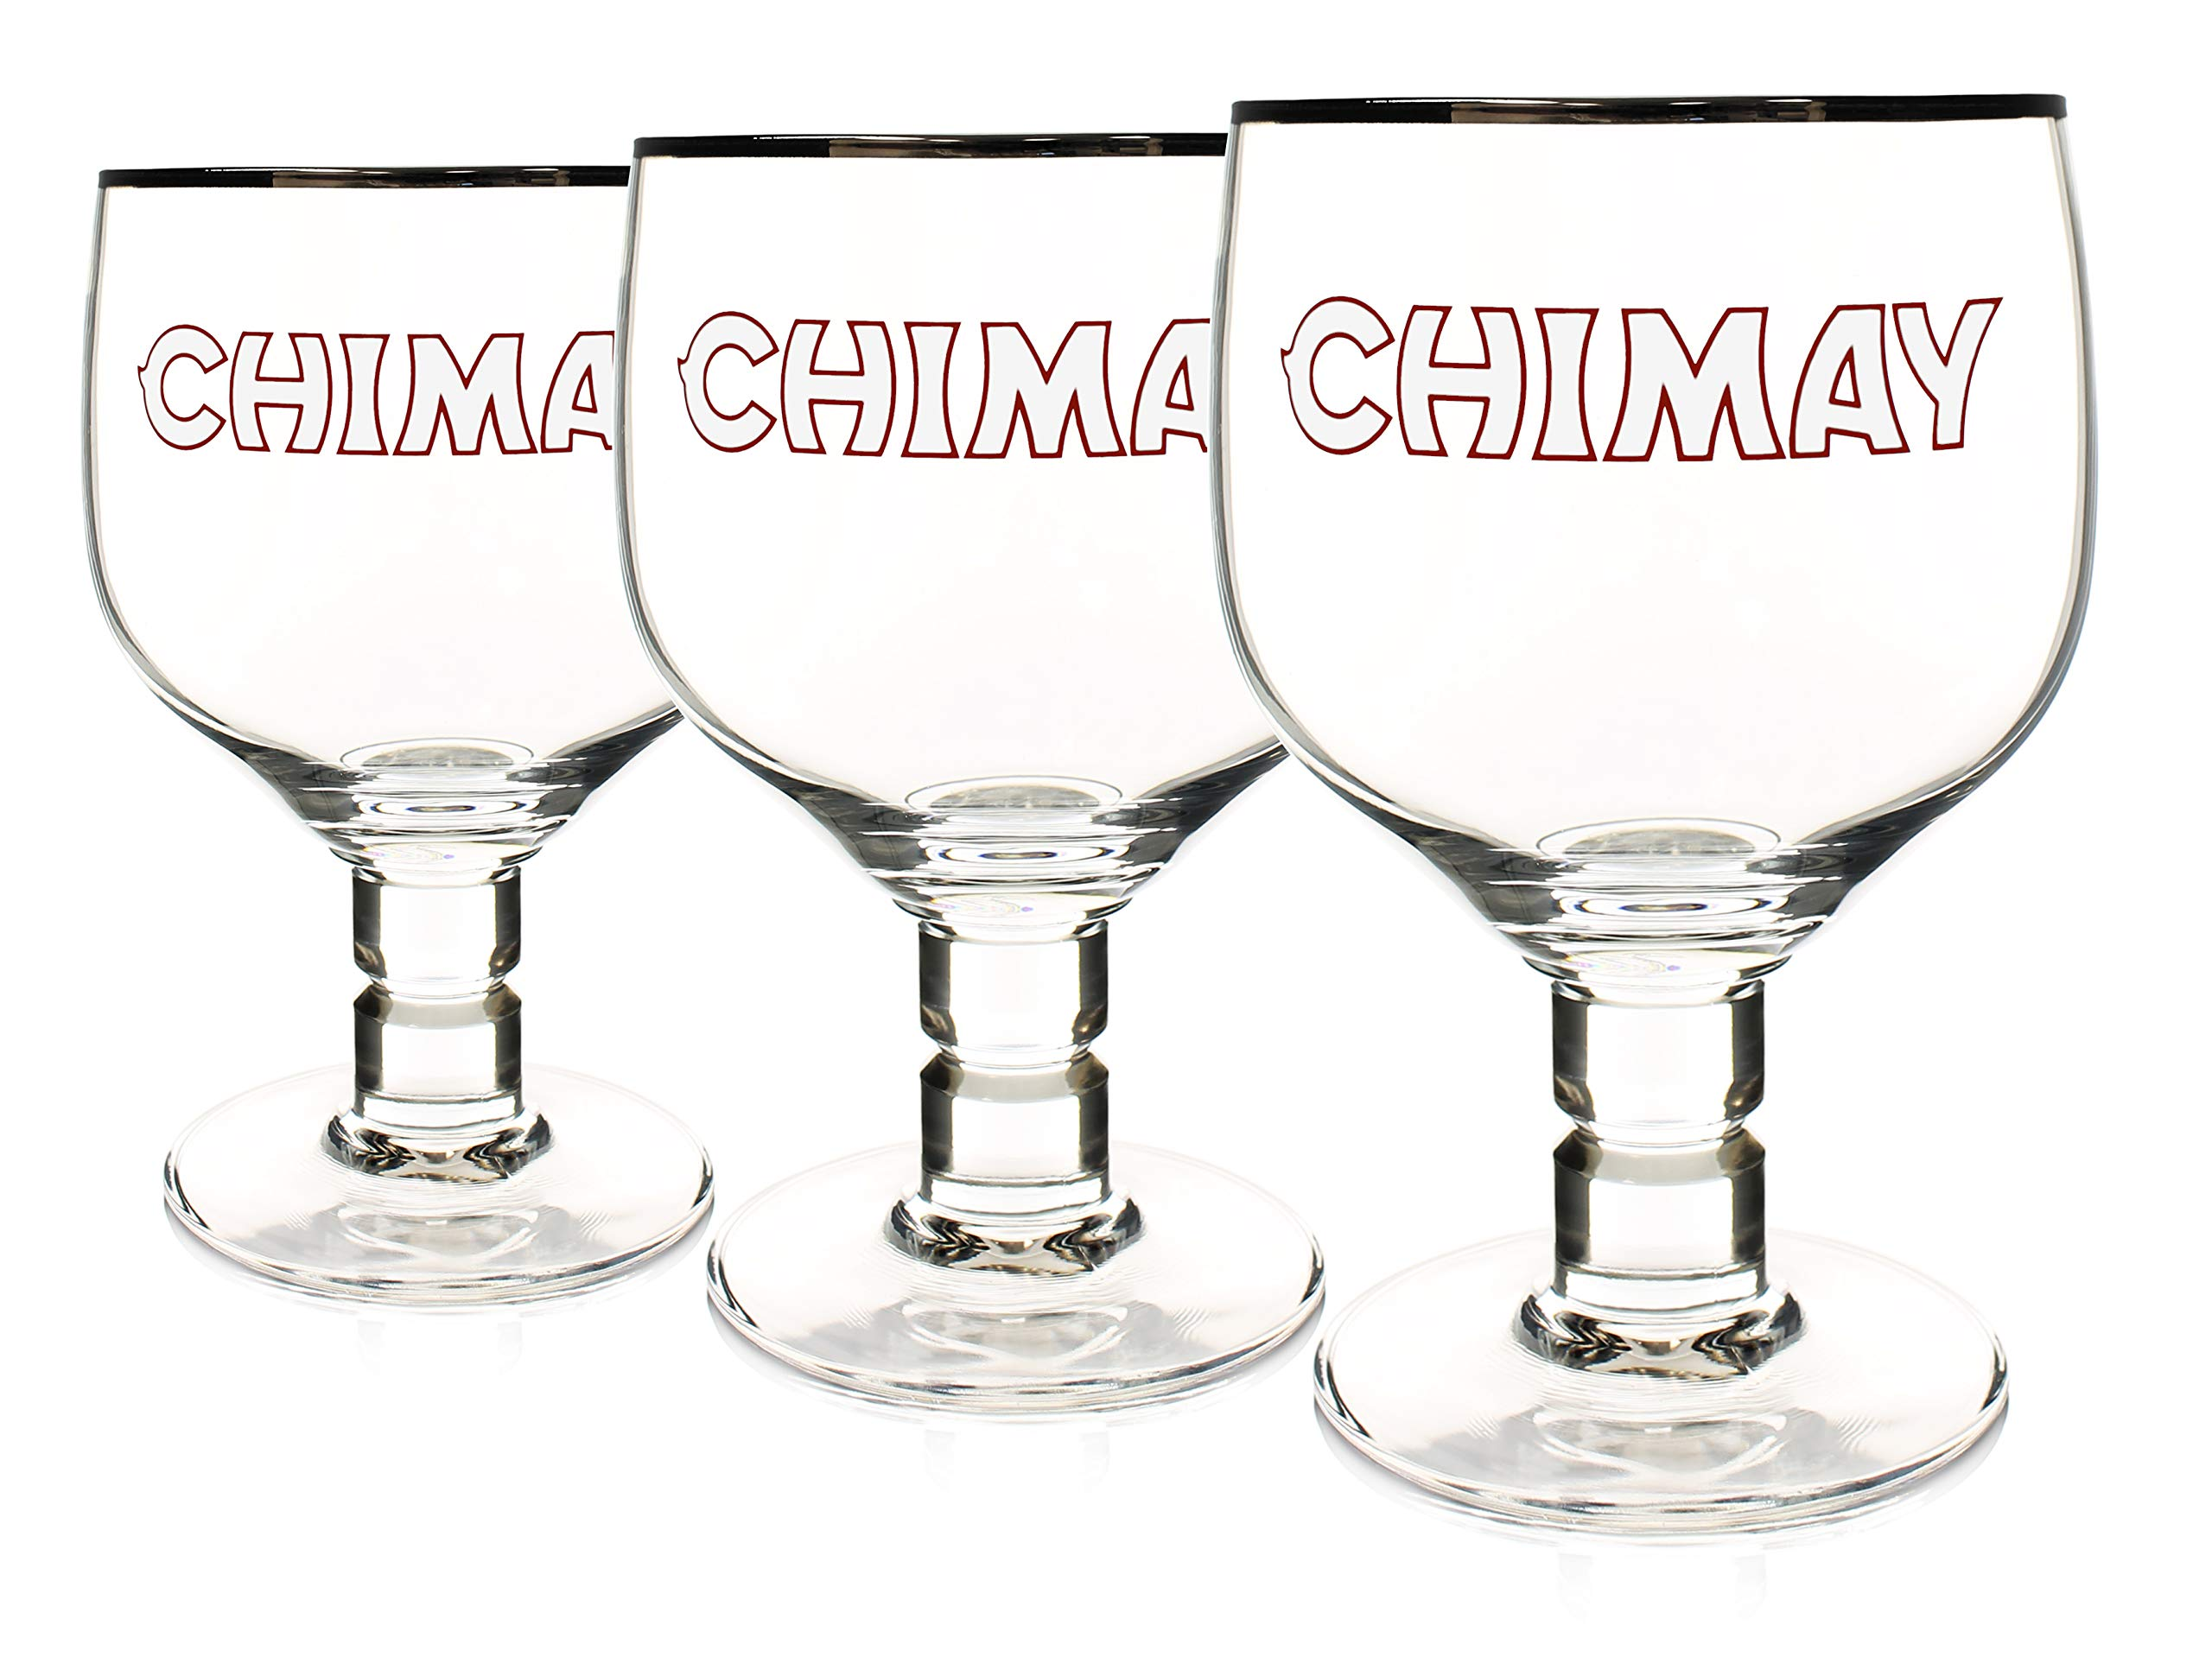 Chimay 3-Pack Original Goblet Chalice Beer Glasses, 33cl